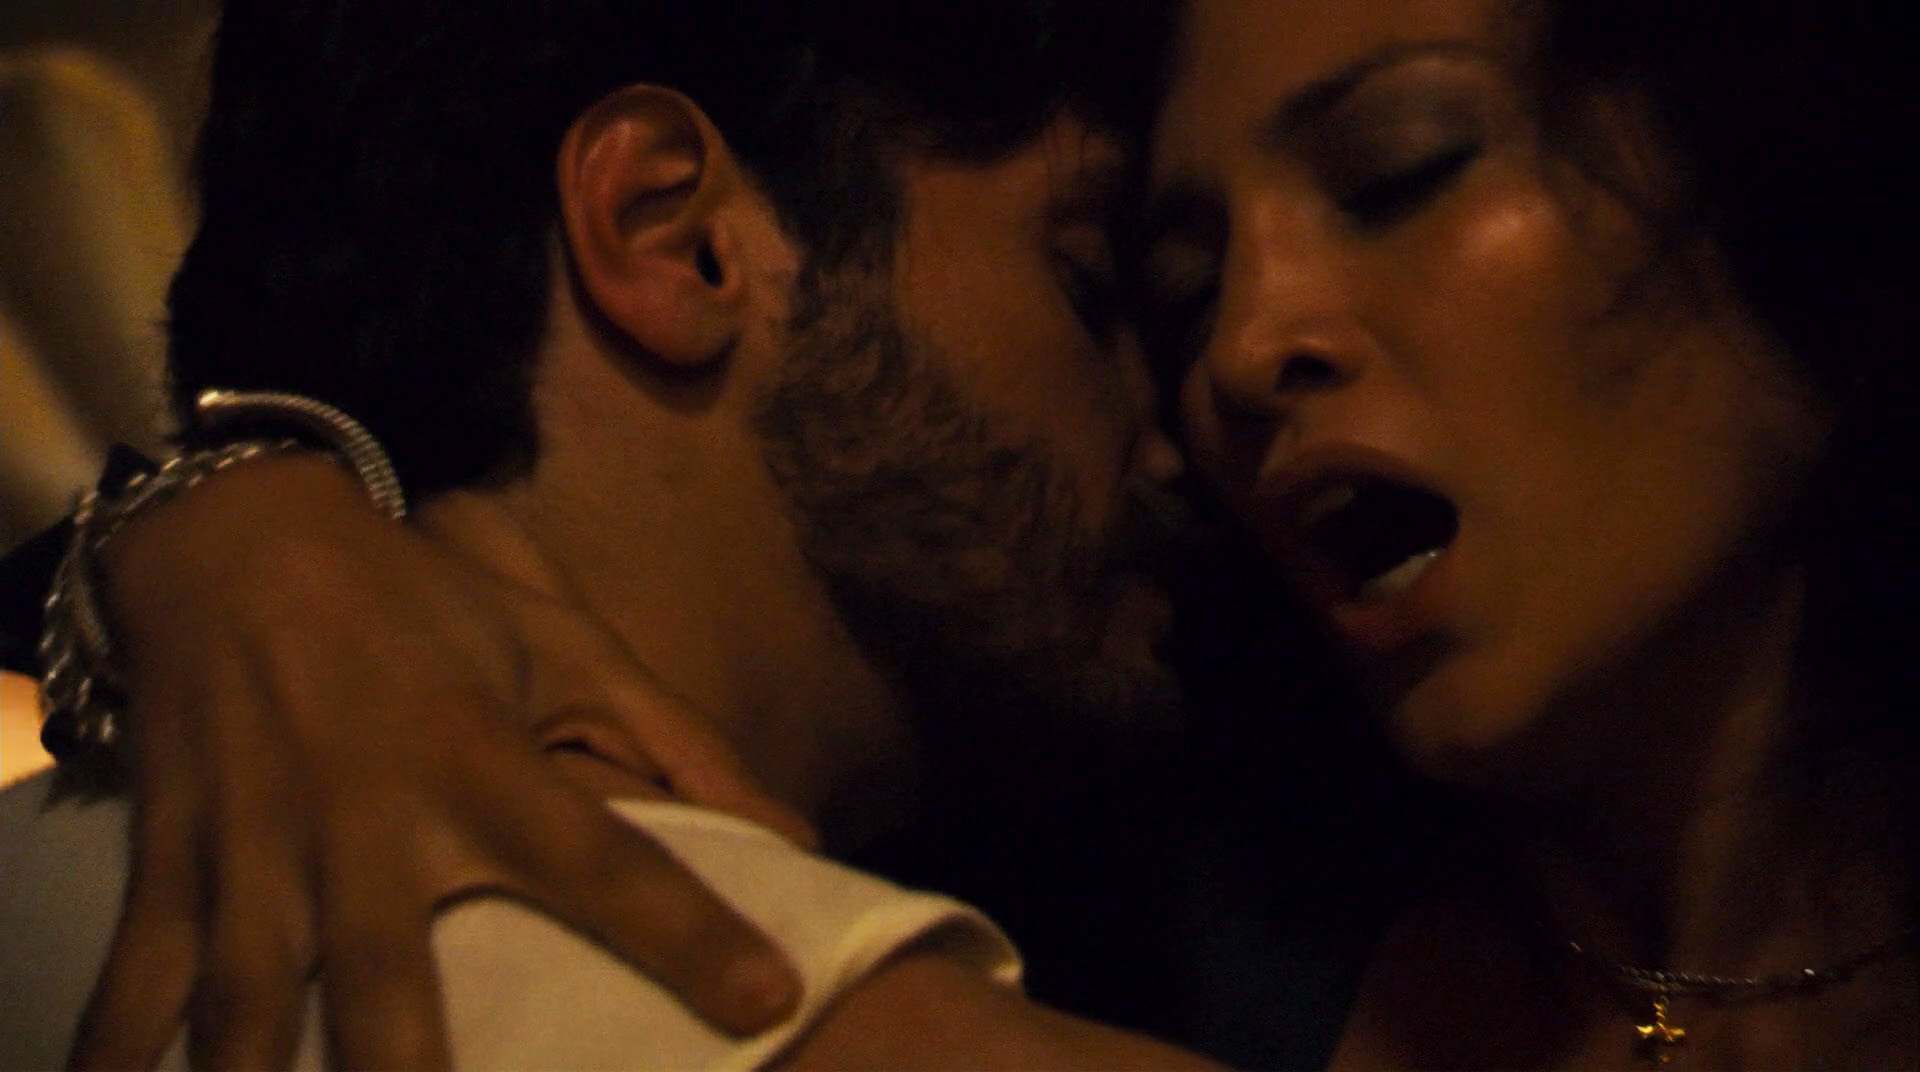 J lo sex scene in anaconda